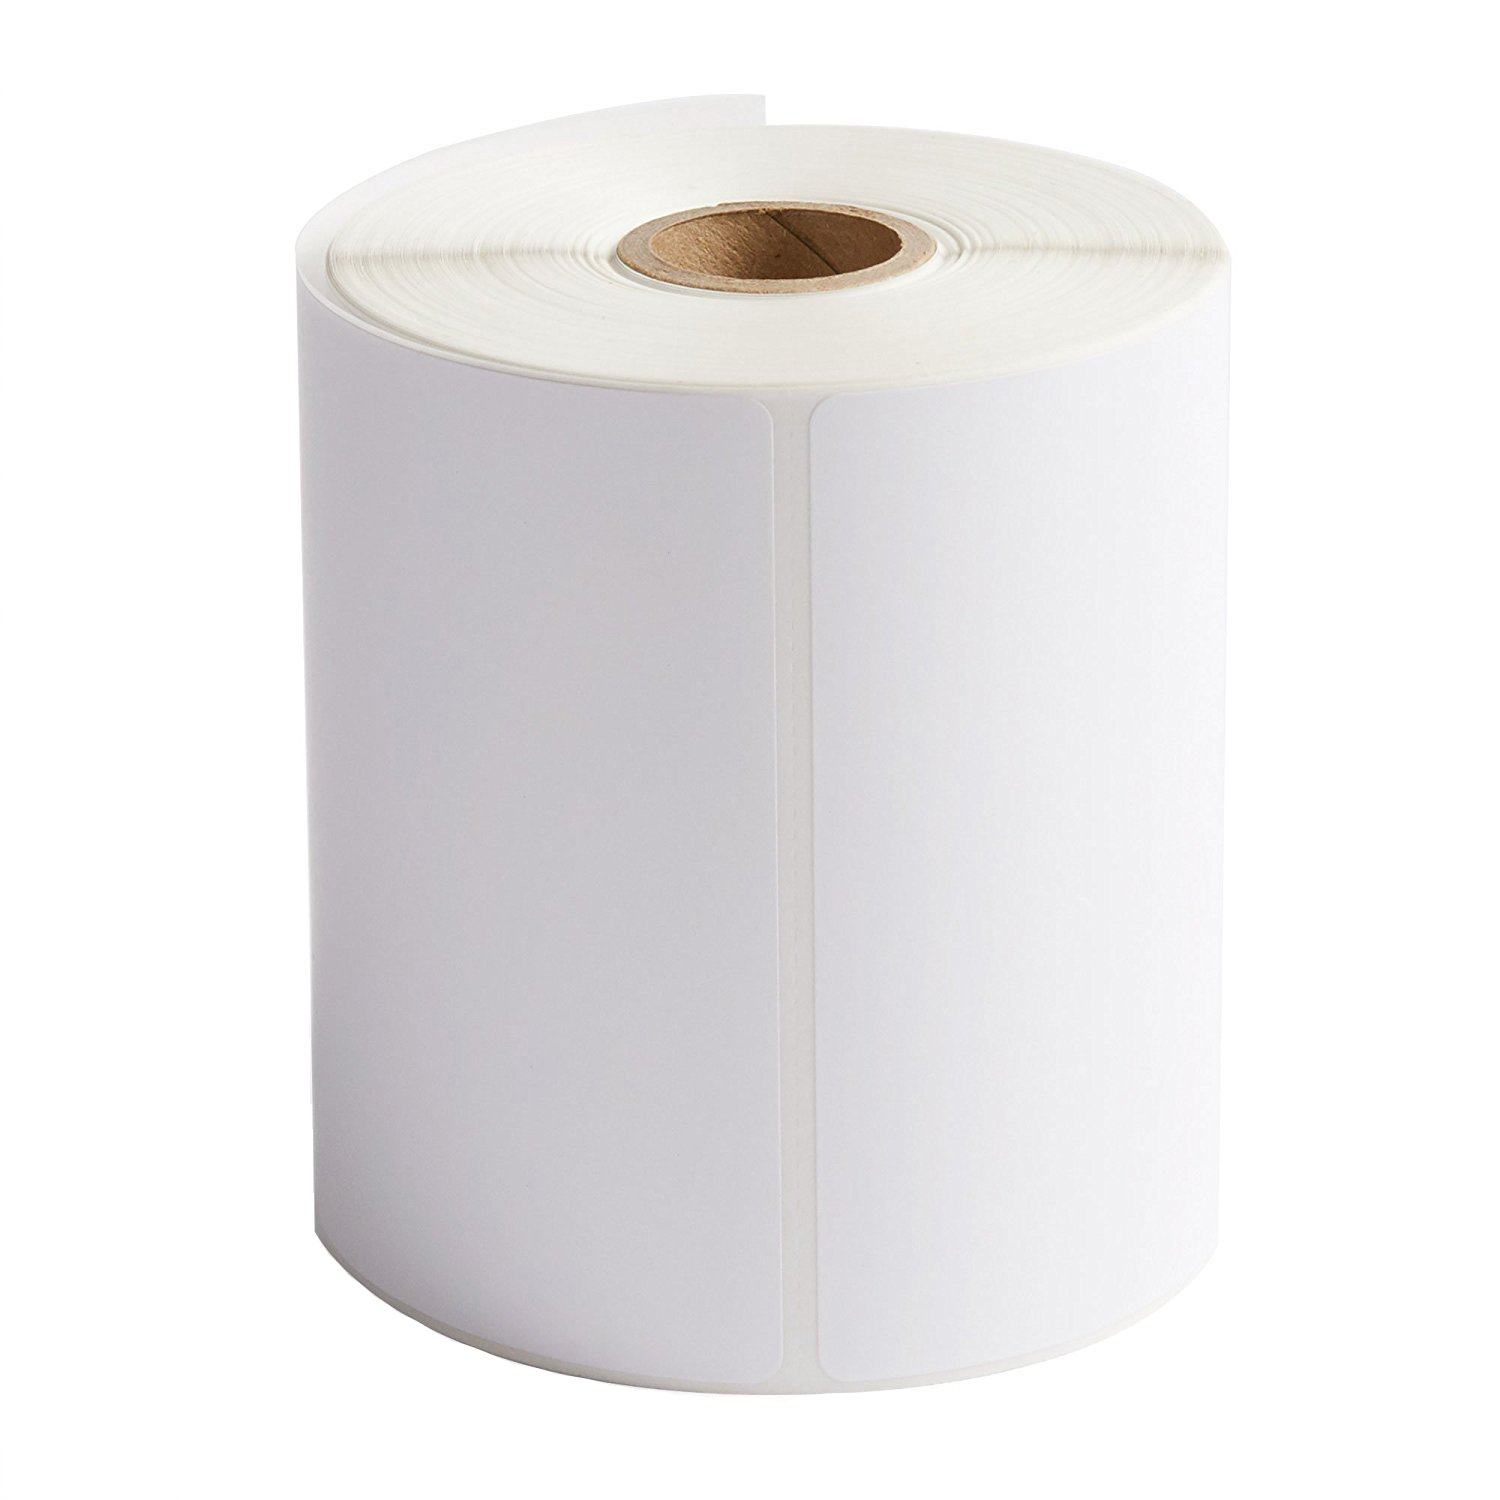 160 Labels Per Roll Perf 36 Rolls 4x4 Direct Thermal Labels For Zebra Printers